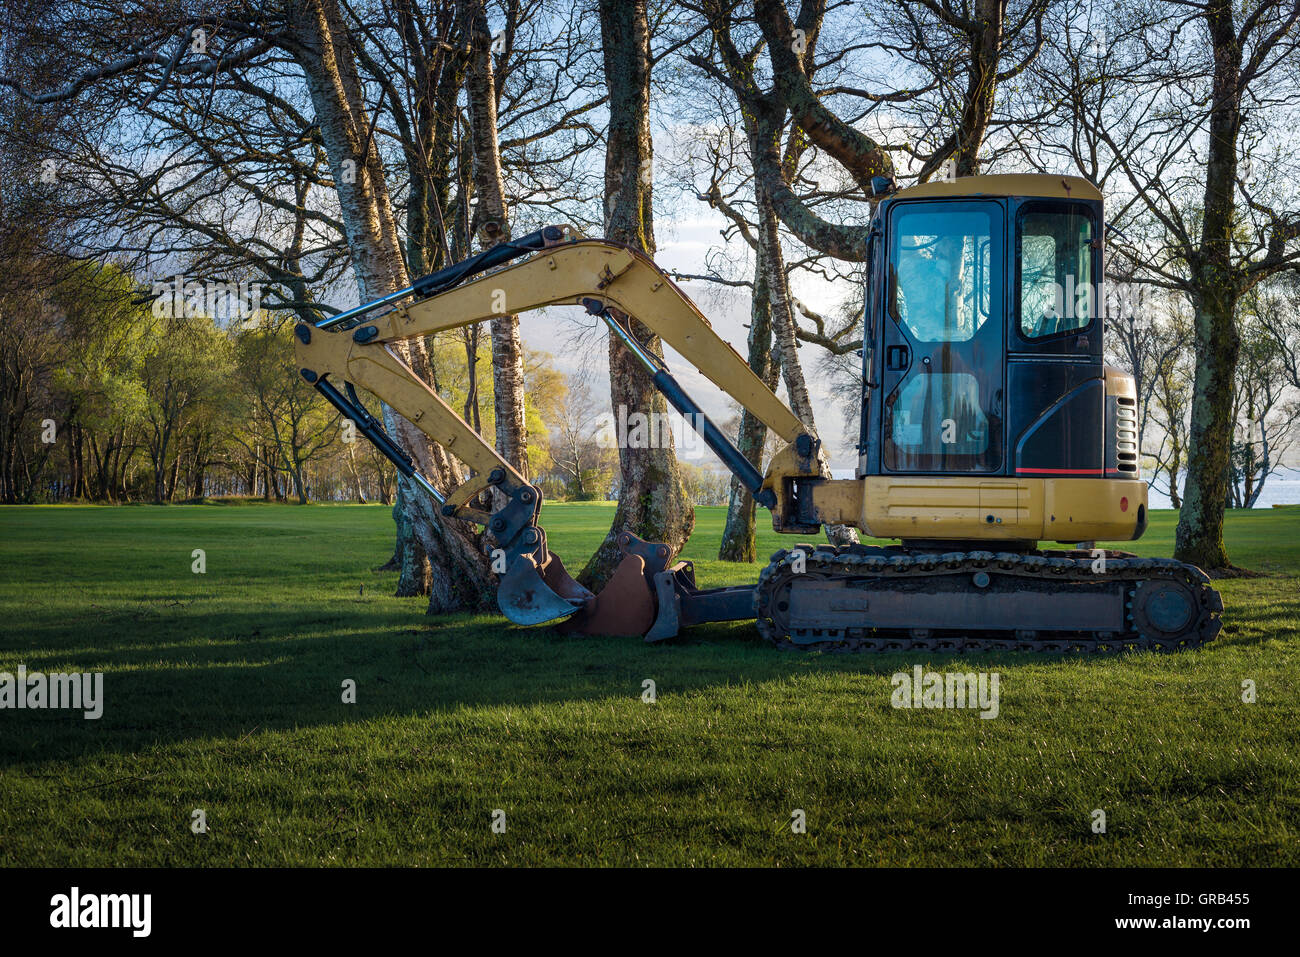 Bagger at a golf course among trees at sunset - Stock Image